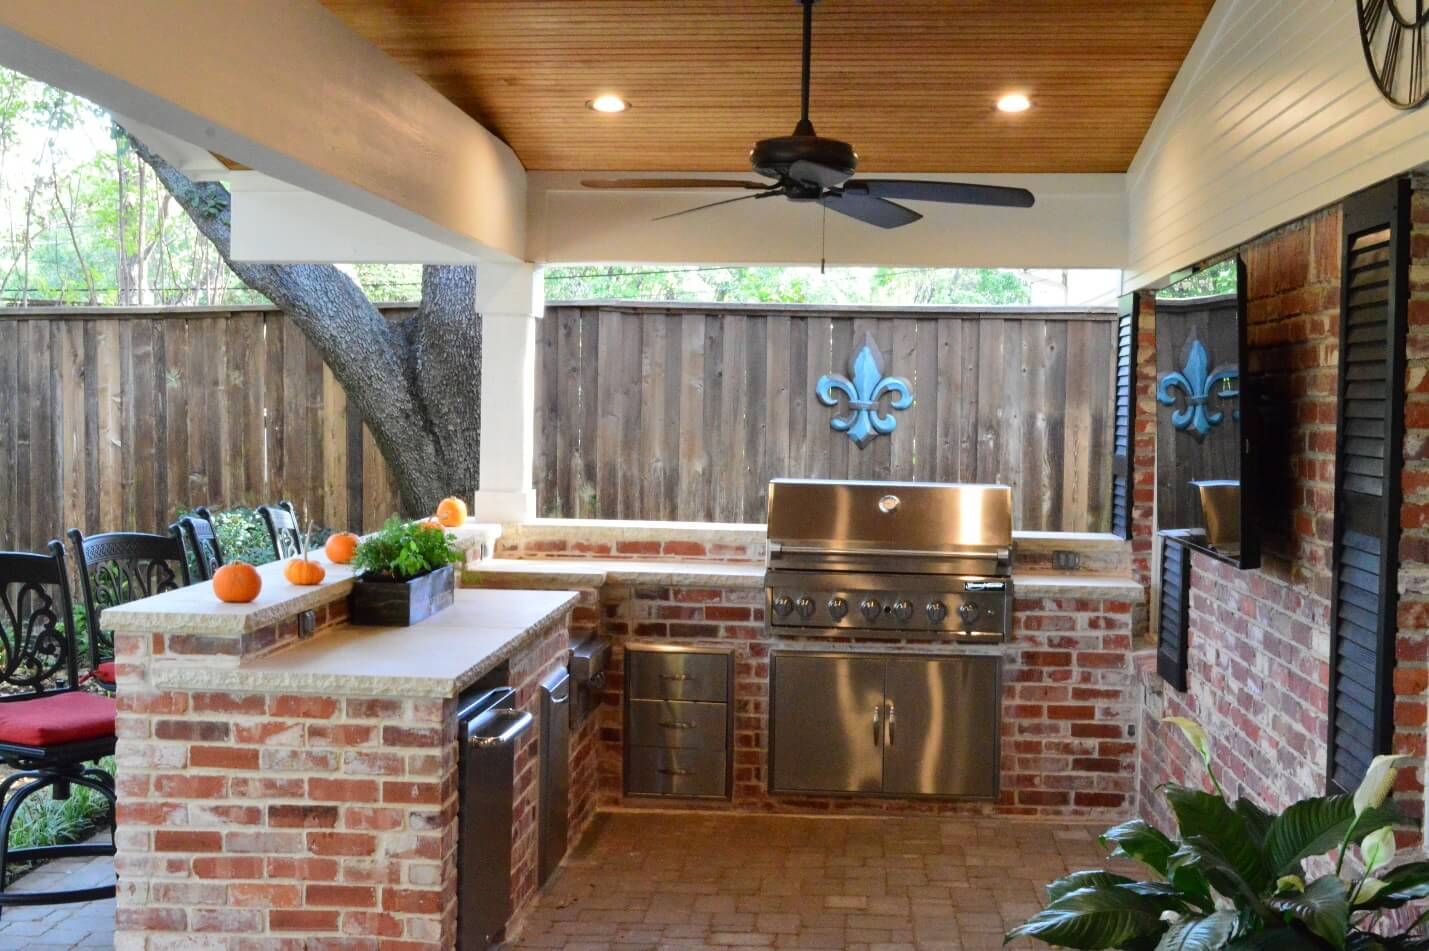 Covered Outdoor Living Space With Grill